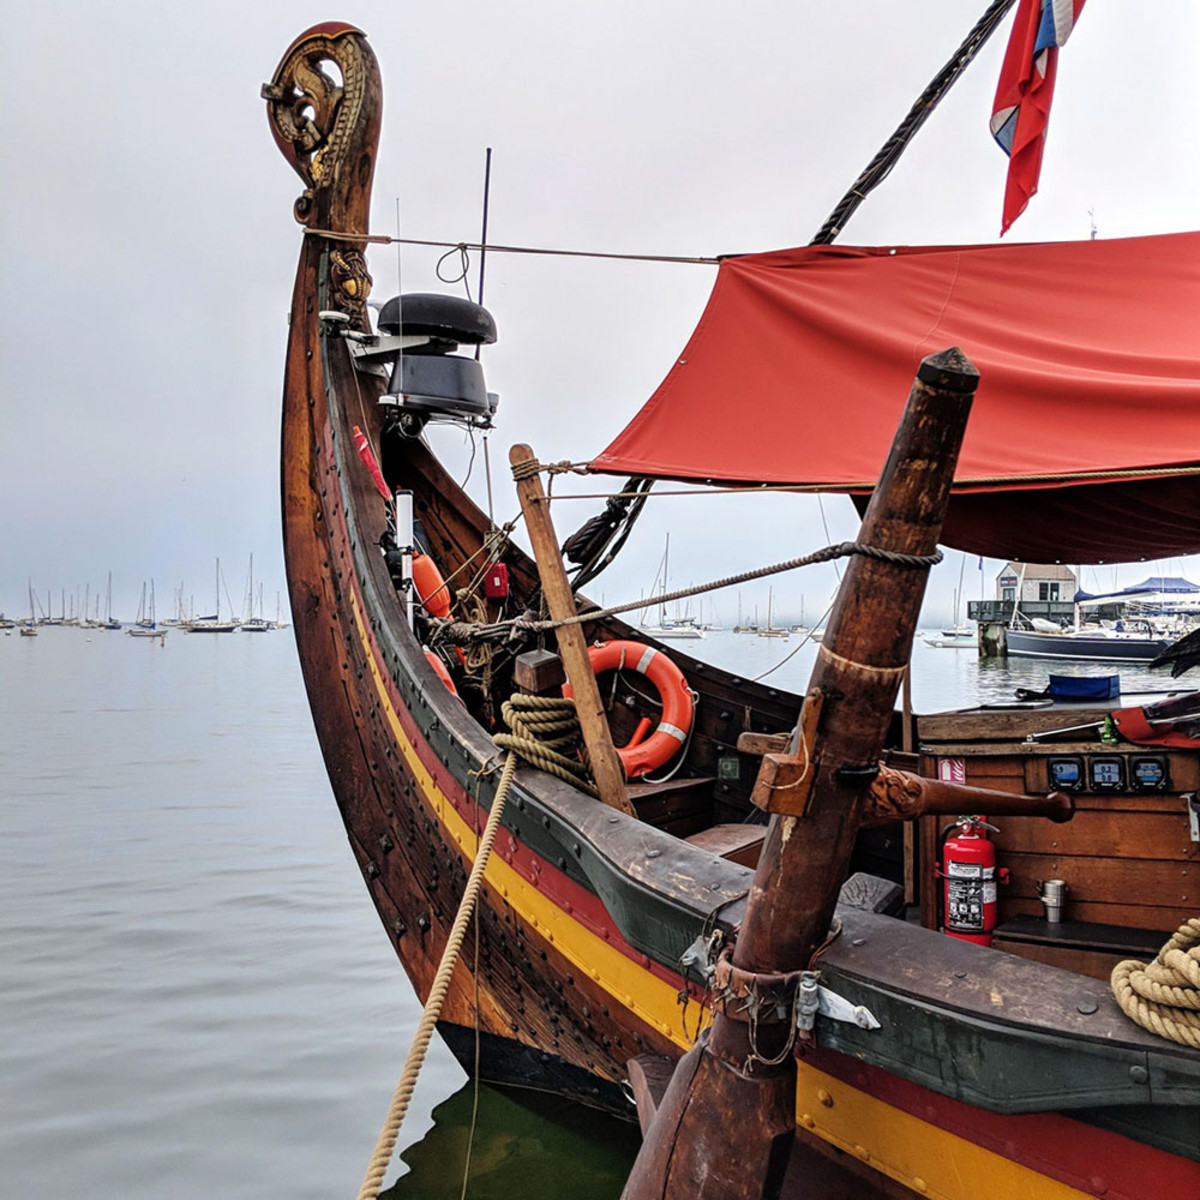 Draken stern with steering oar and some modern day guidance.